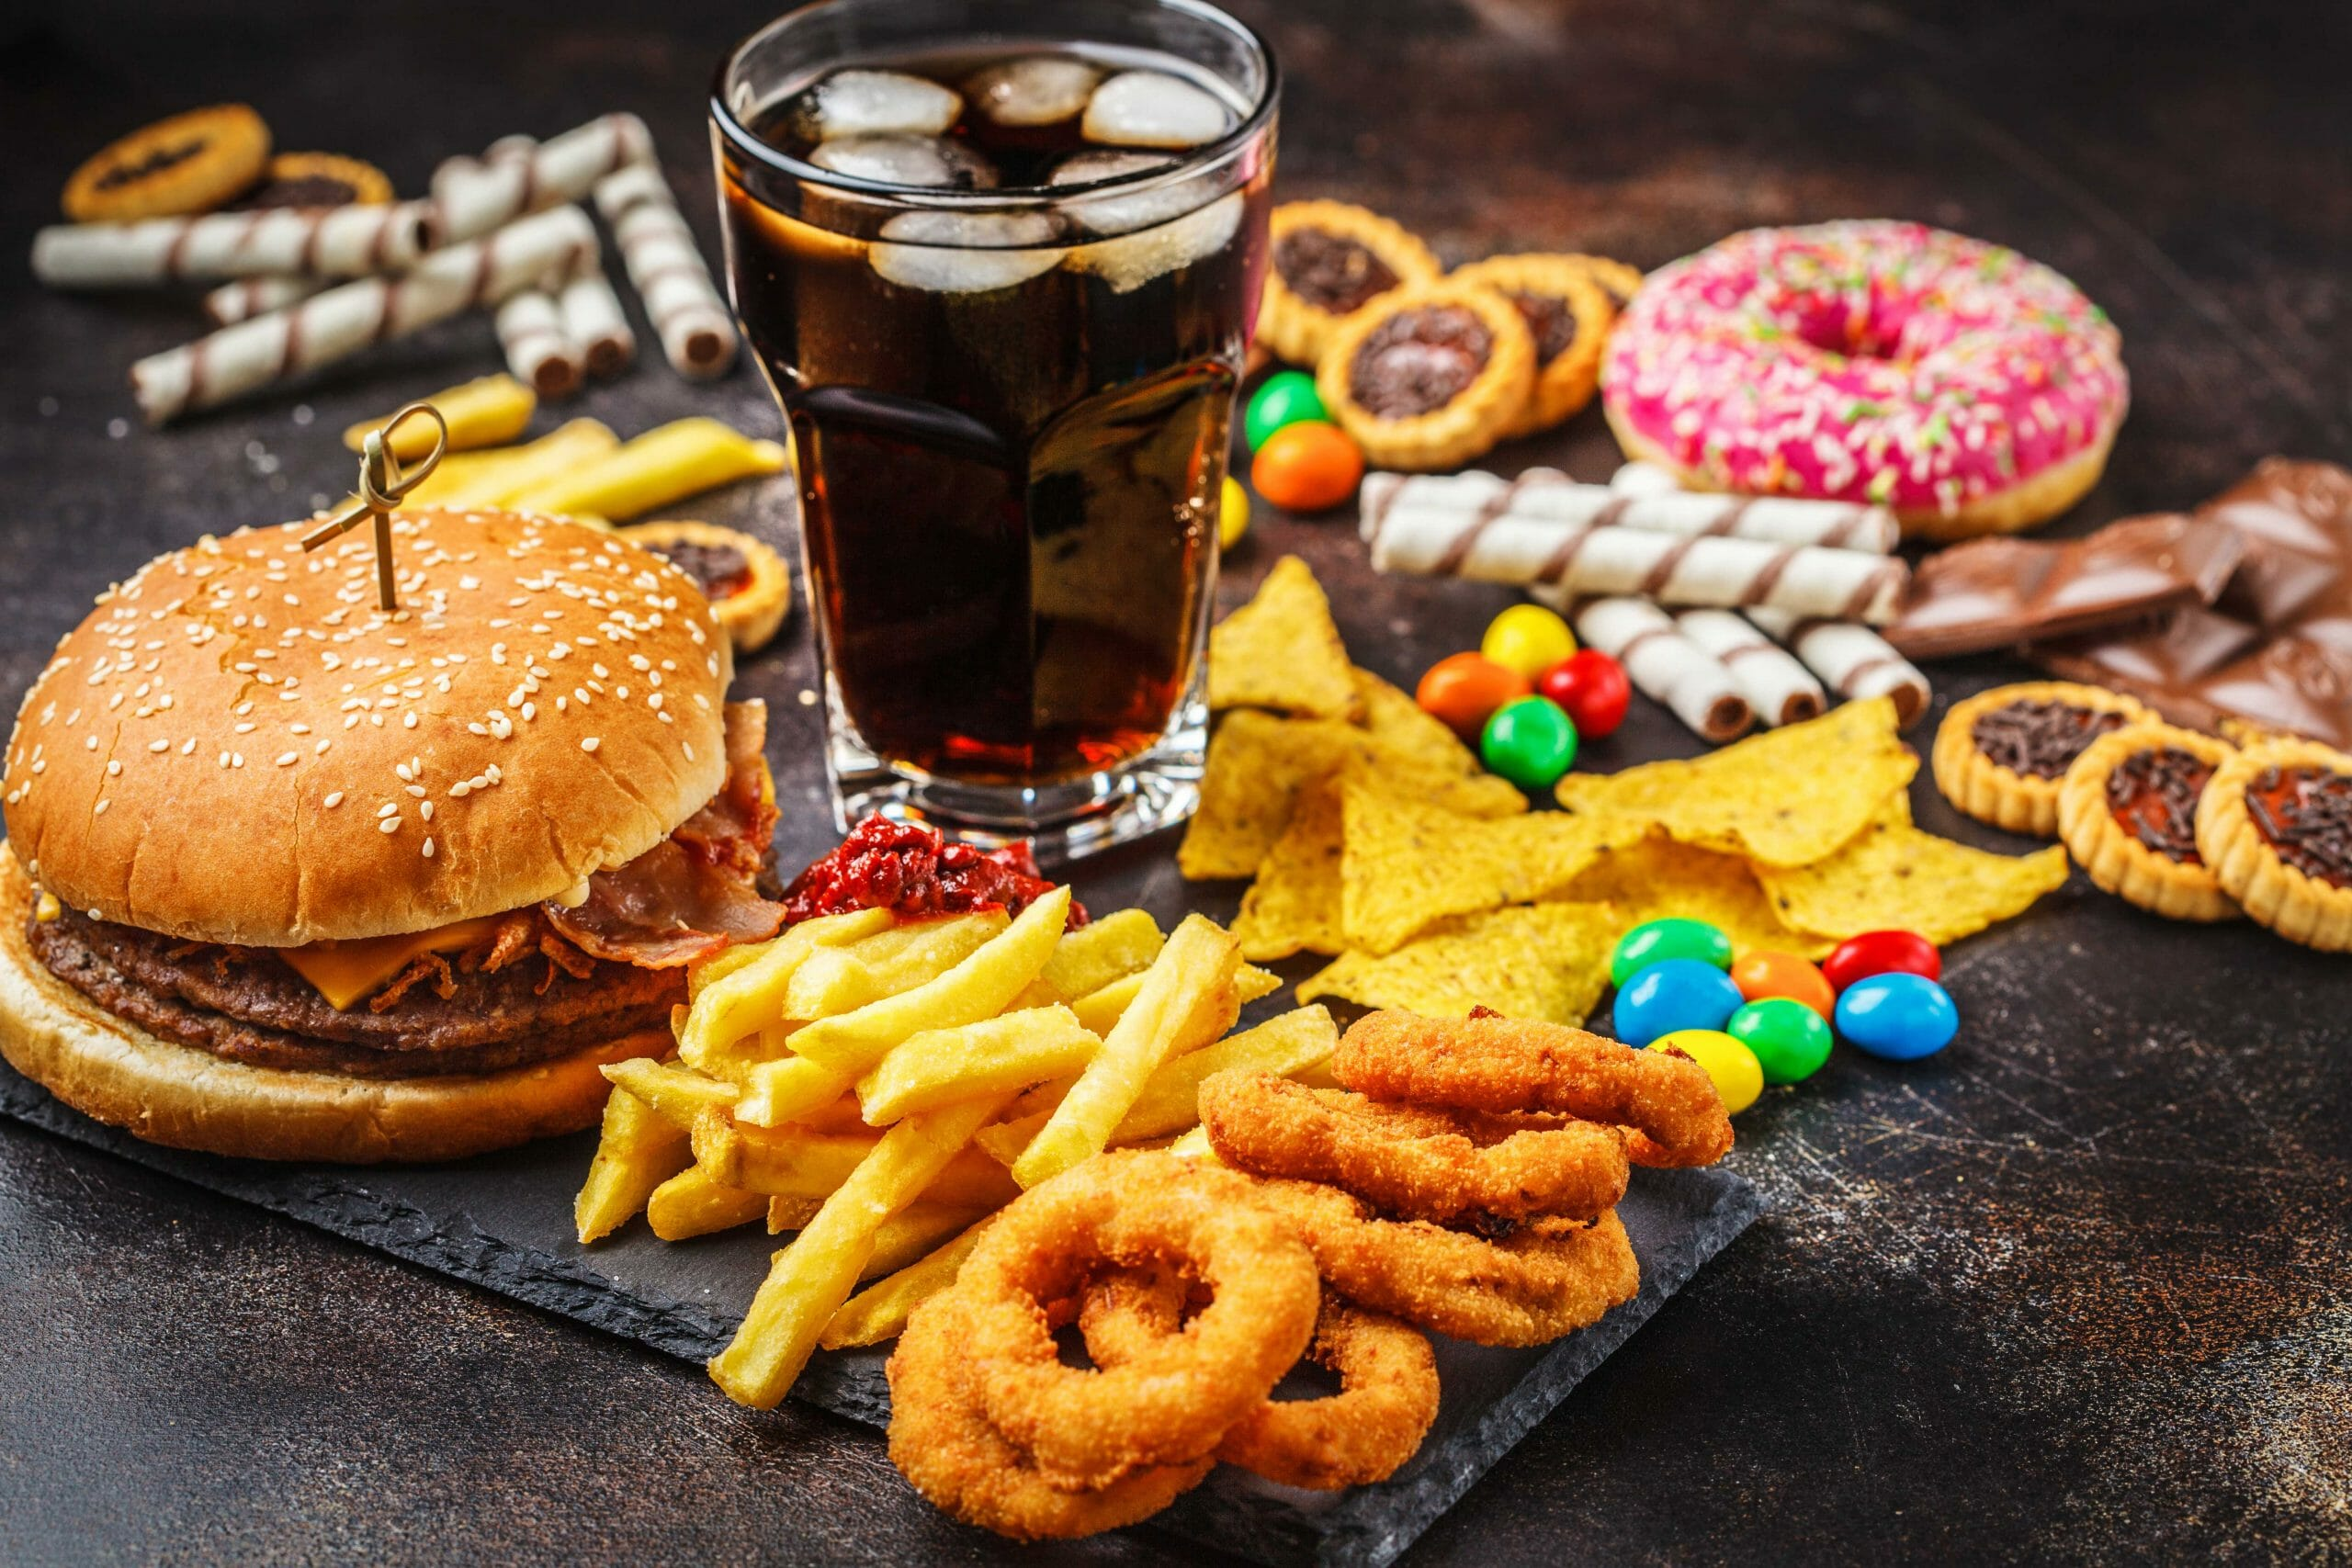 fast food and junk food images